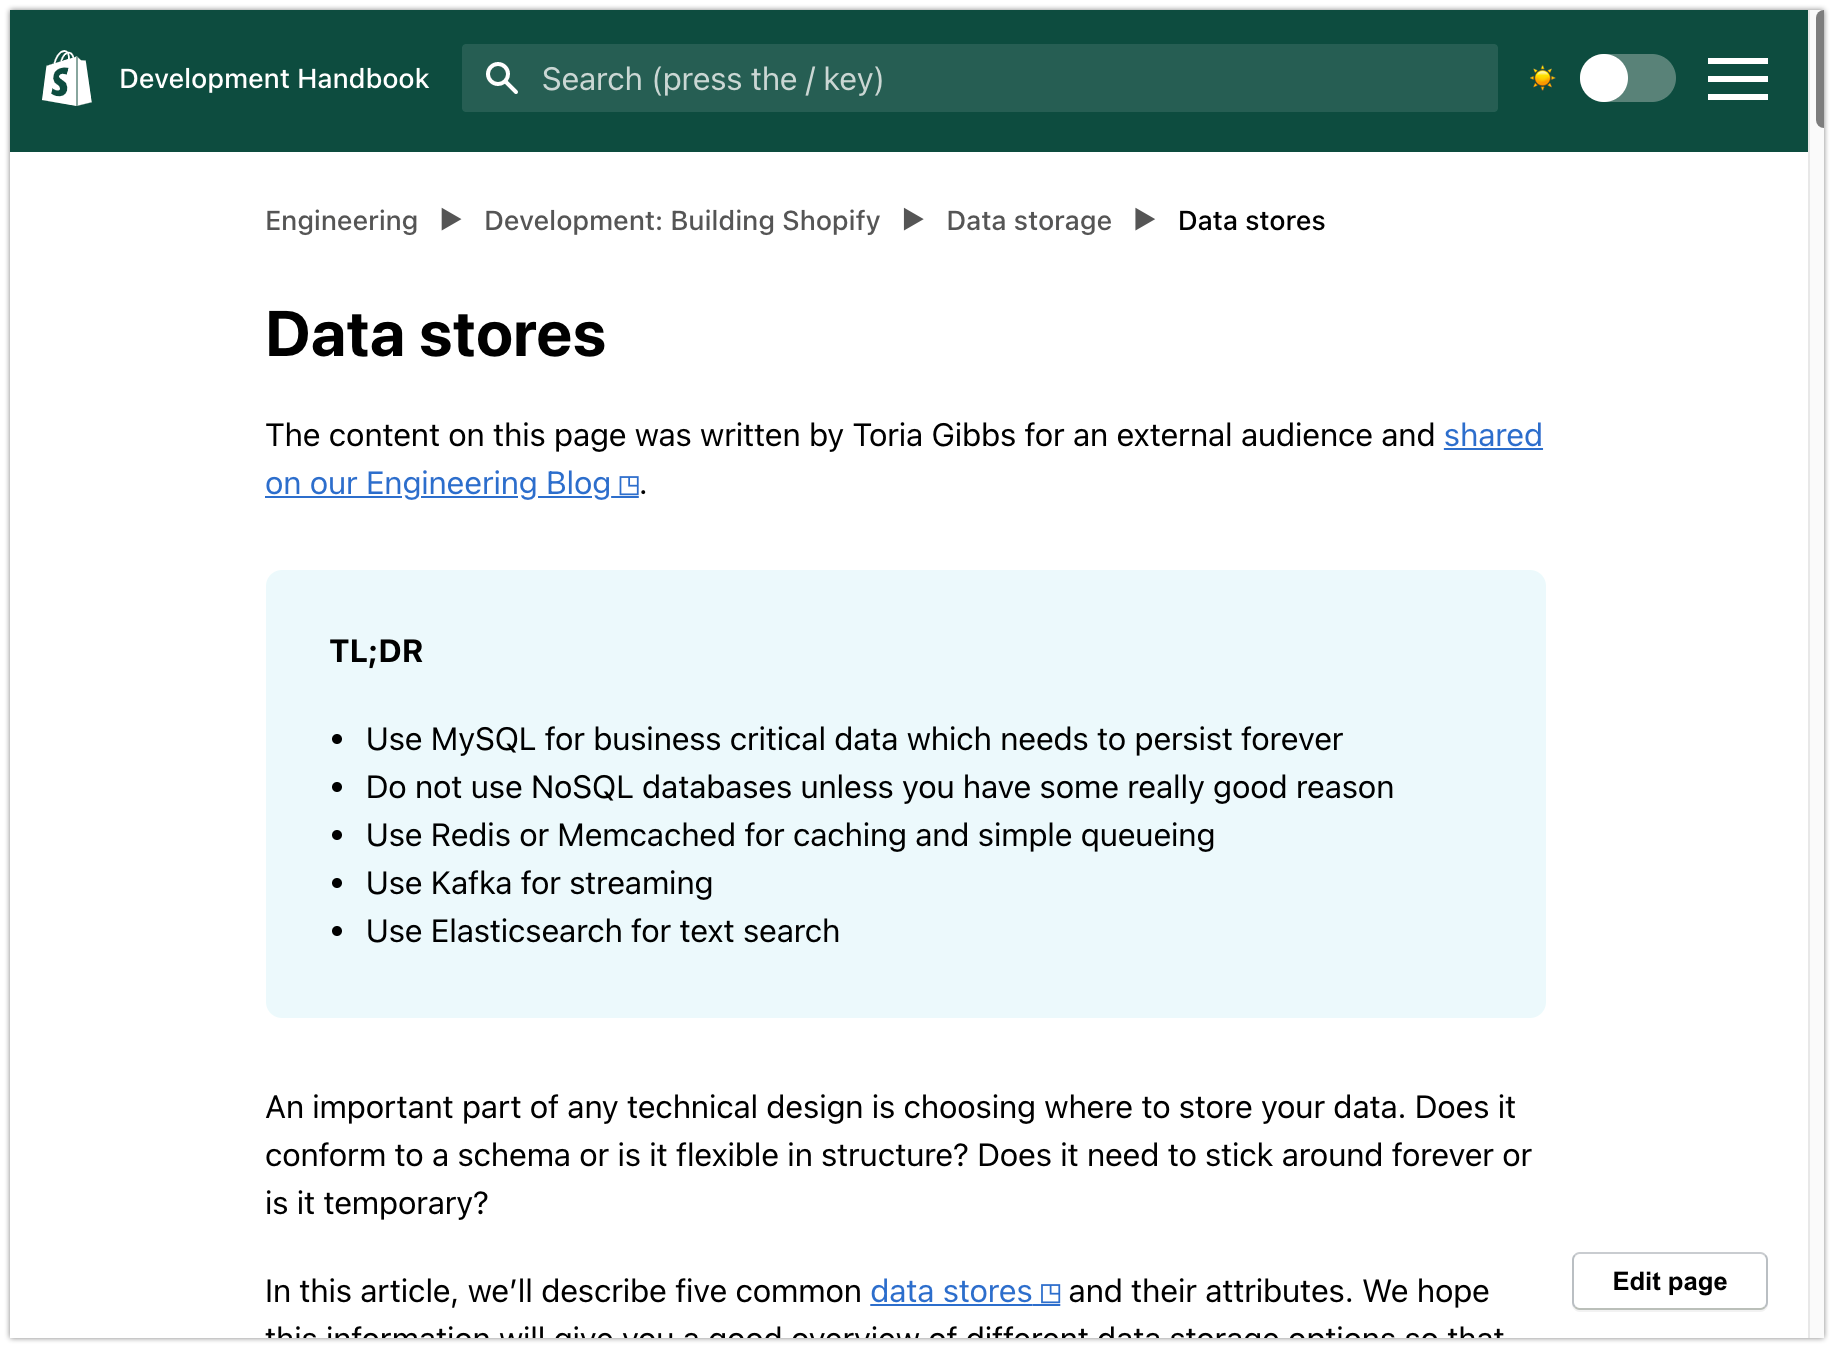 A sample page from the Development Handbook website.  The top of the page contains the search functionality and hamburger menu. Below that is a breadcrumb menu feature.  The title of the Page is Data Stores and the copy is shown below the title.